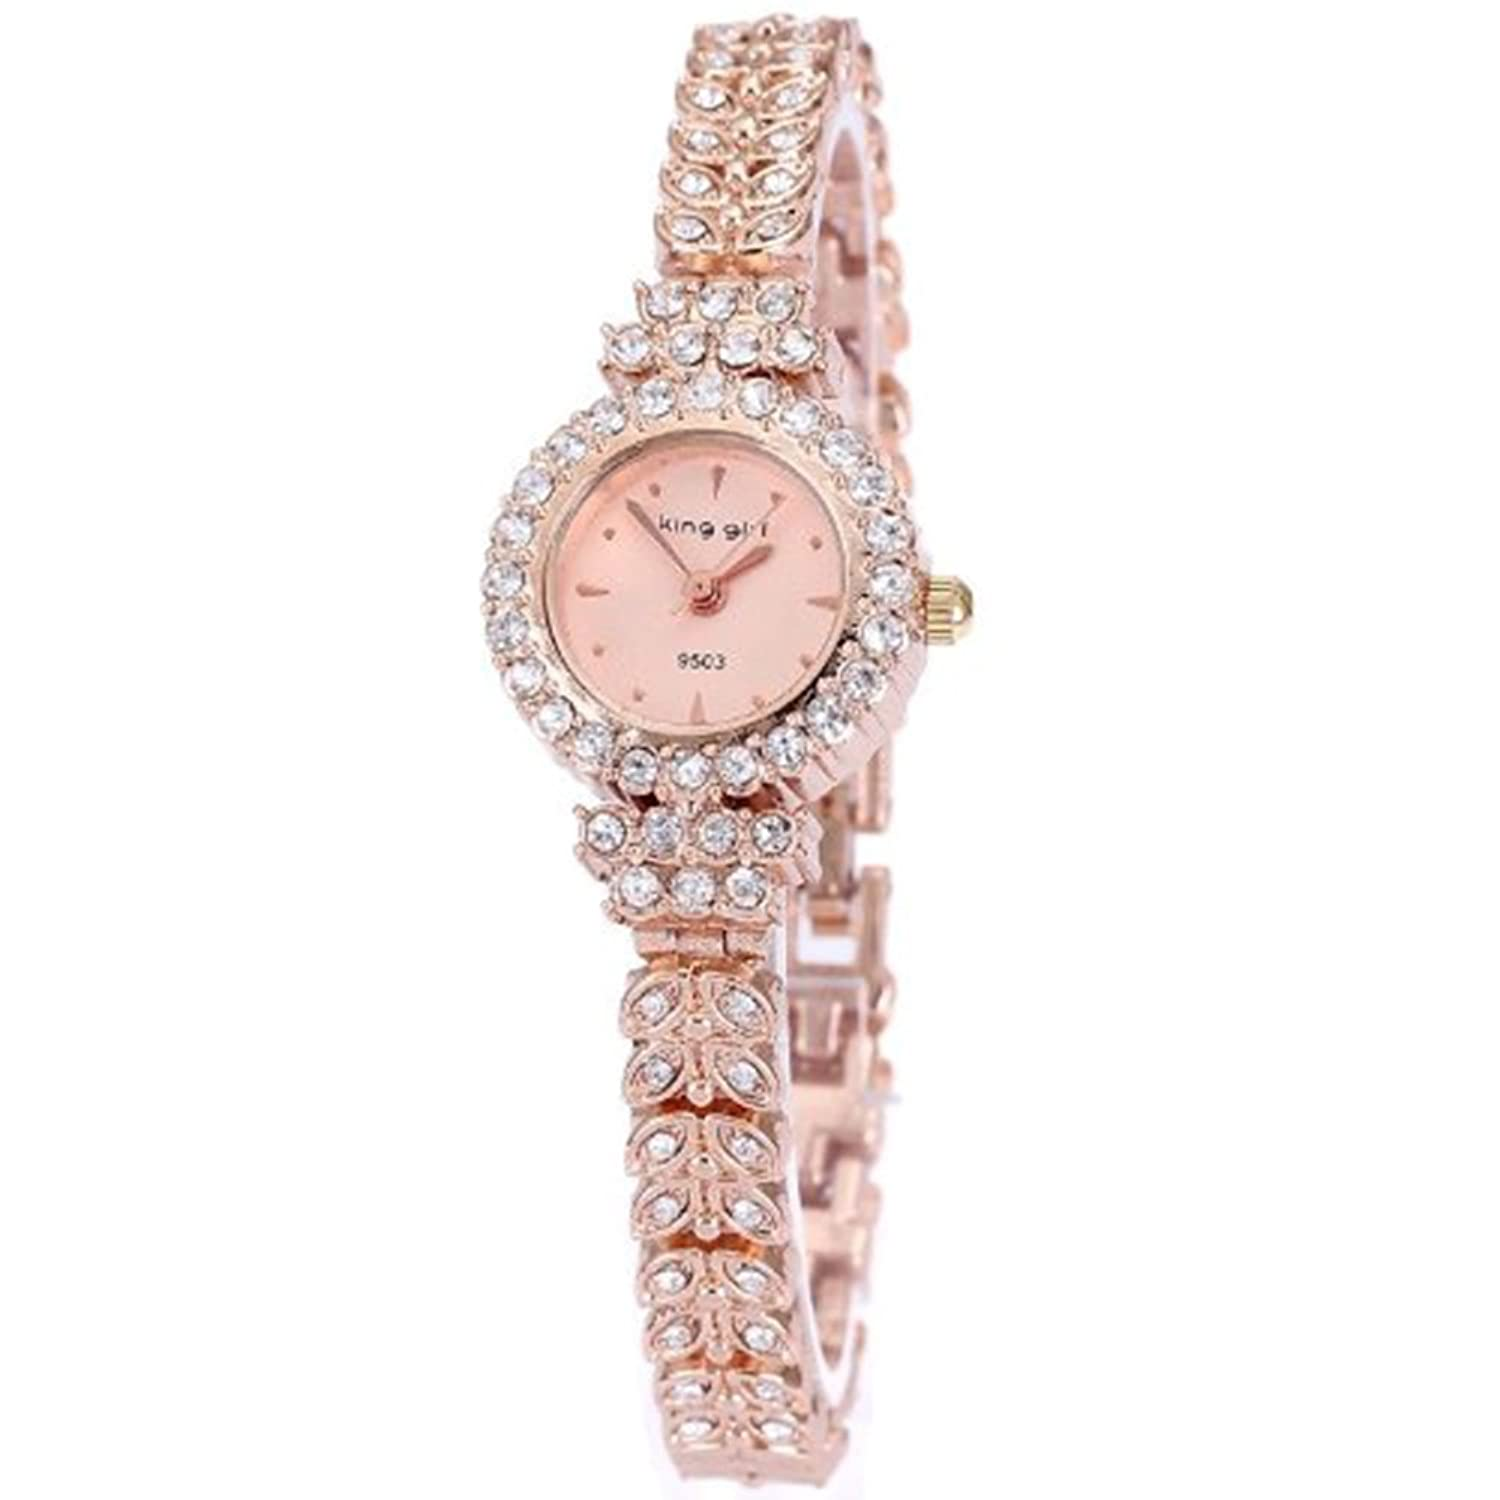 King Girl royal rose gold bracelet watch women top brand unique full crystal diamonds for ladies quartz round - pink dial